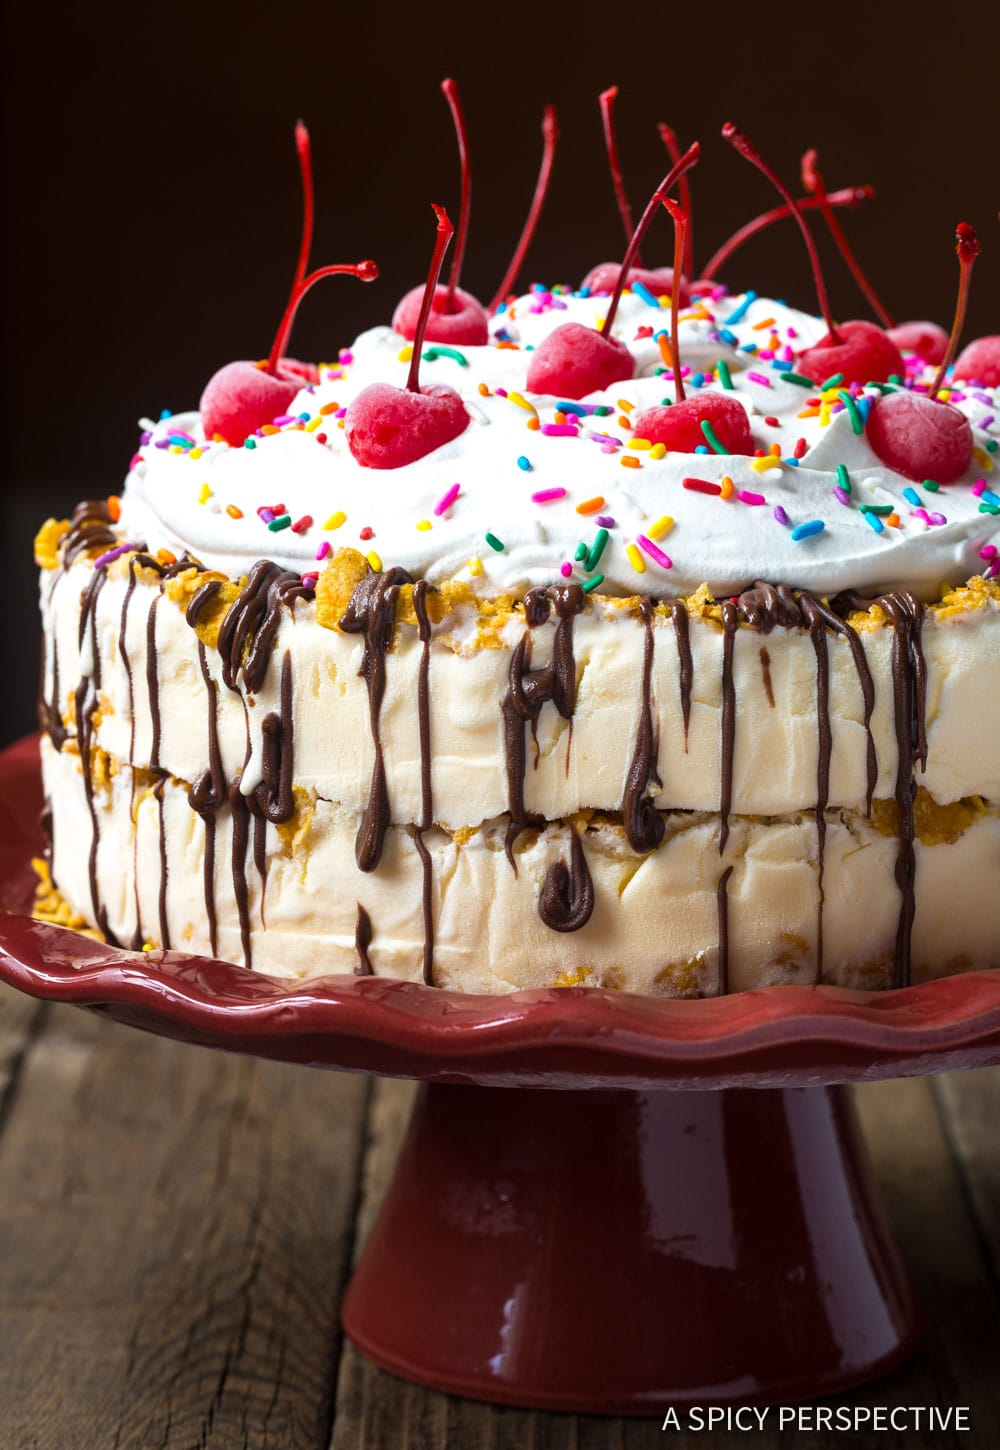 How Long Is Ice Cream Cake Good For : cream, Mexican, Fried, Cream, Spicy, Perspective